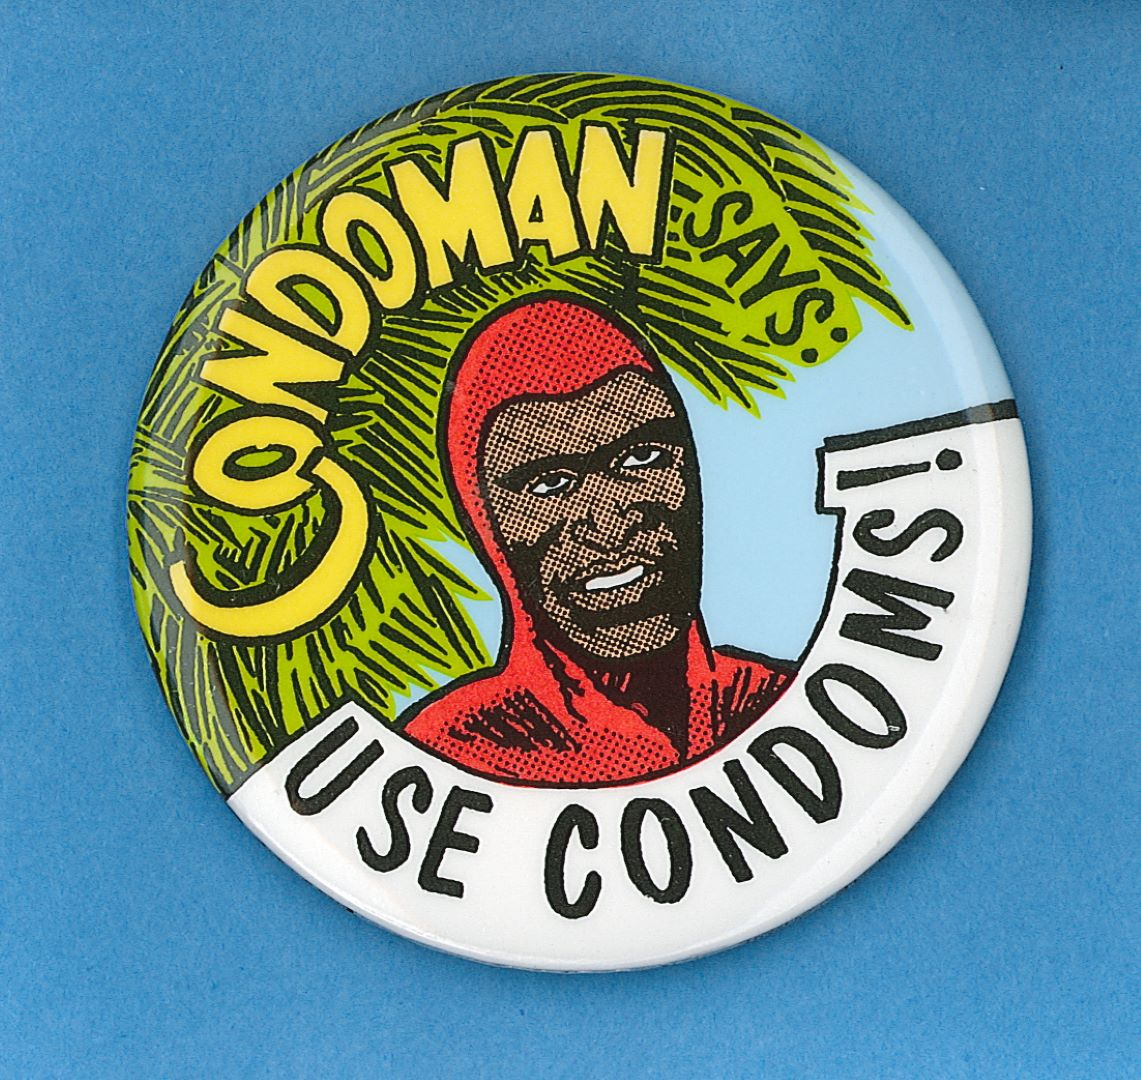 Condoman says: use condoms - Commonwealth Department of Human Services and Health and Aboriginal Health Workers of Australia (Queensland), c.1991 2-15-1